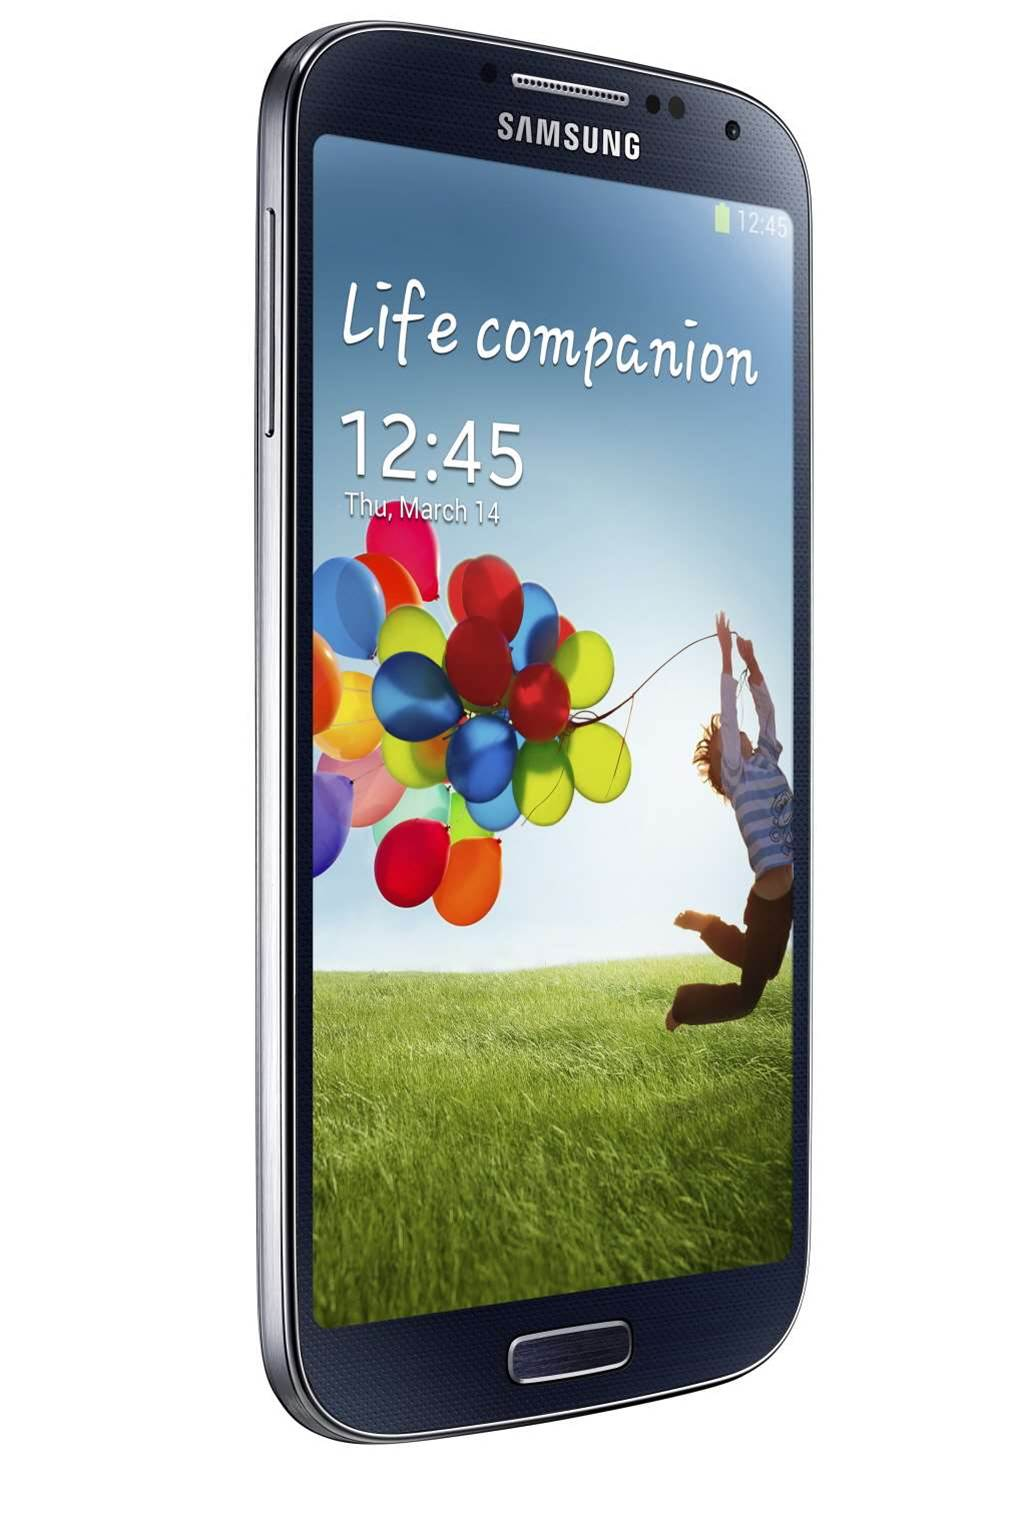 Review: Samsung Galaxy S4 smartphone